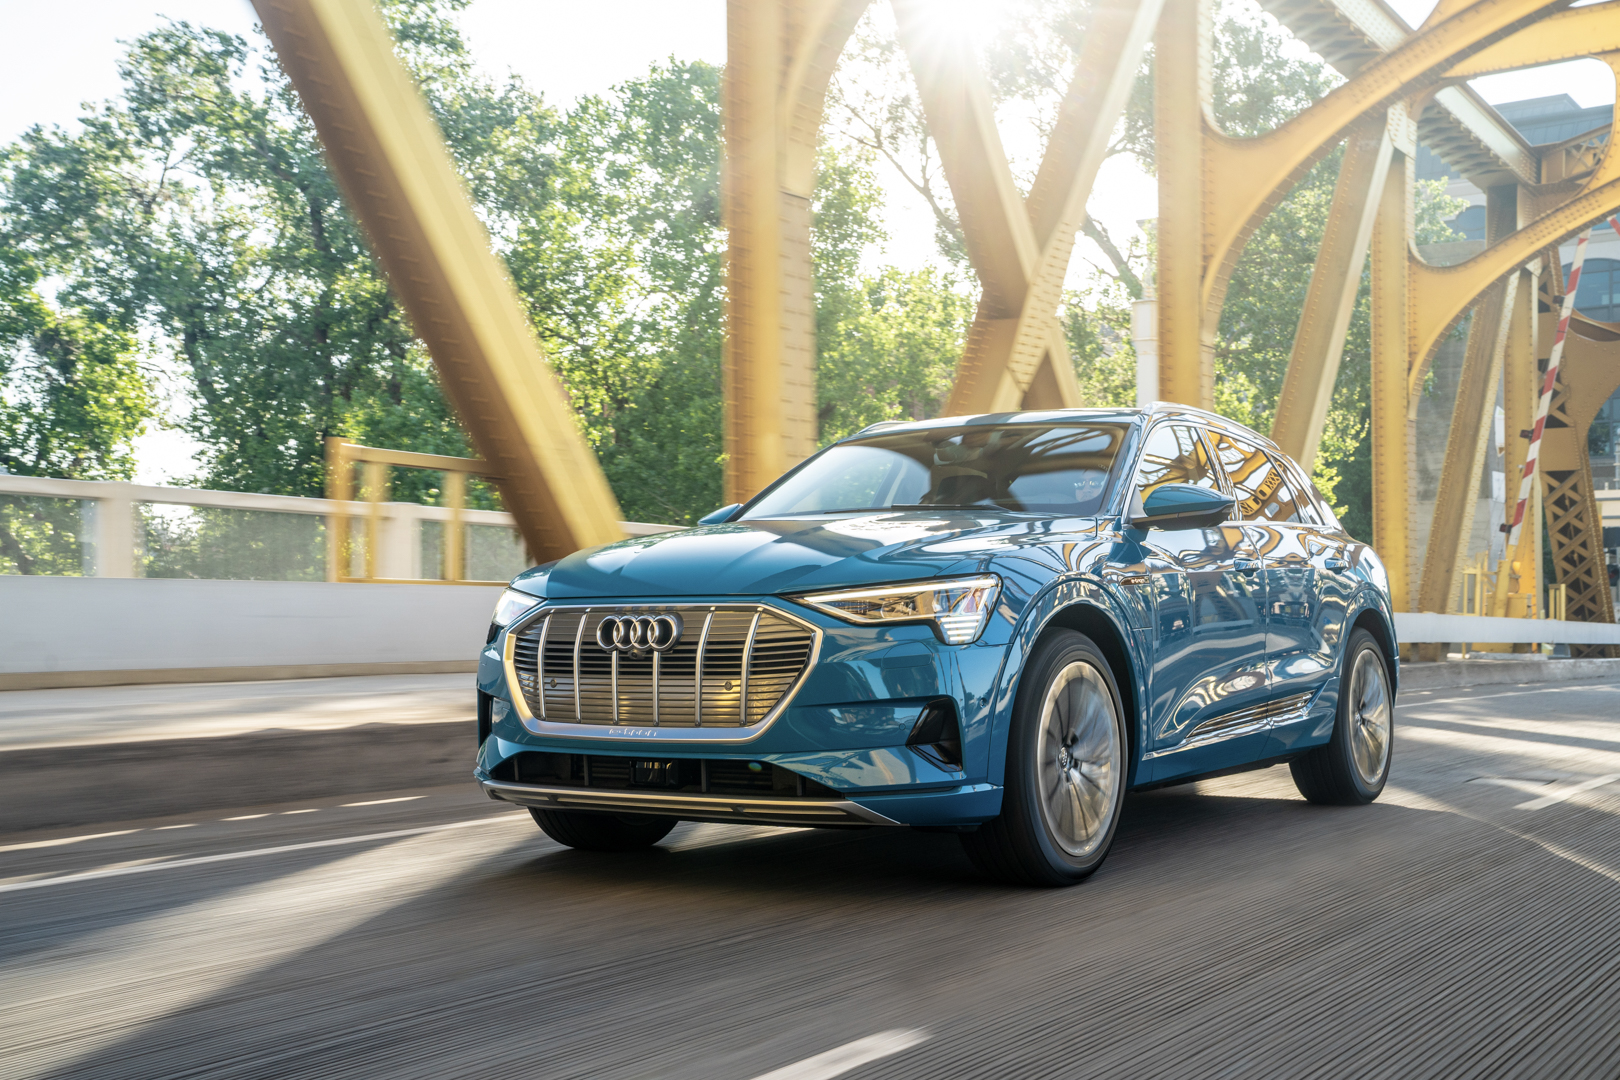 FIRST DRIVE: The Audi e-tron is an EV for Beginners